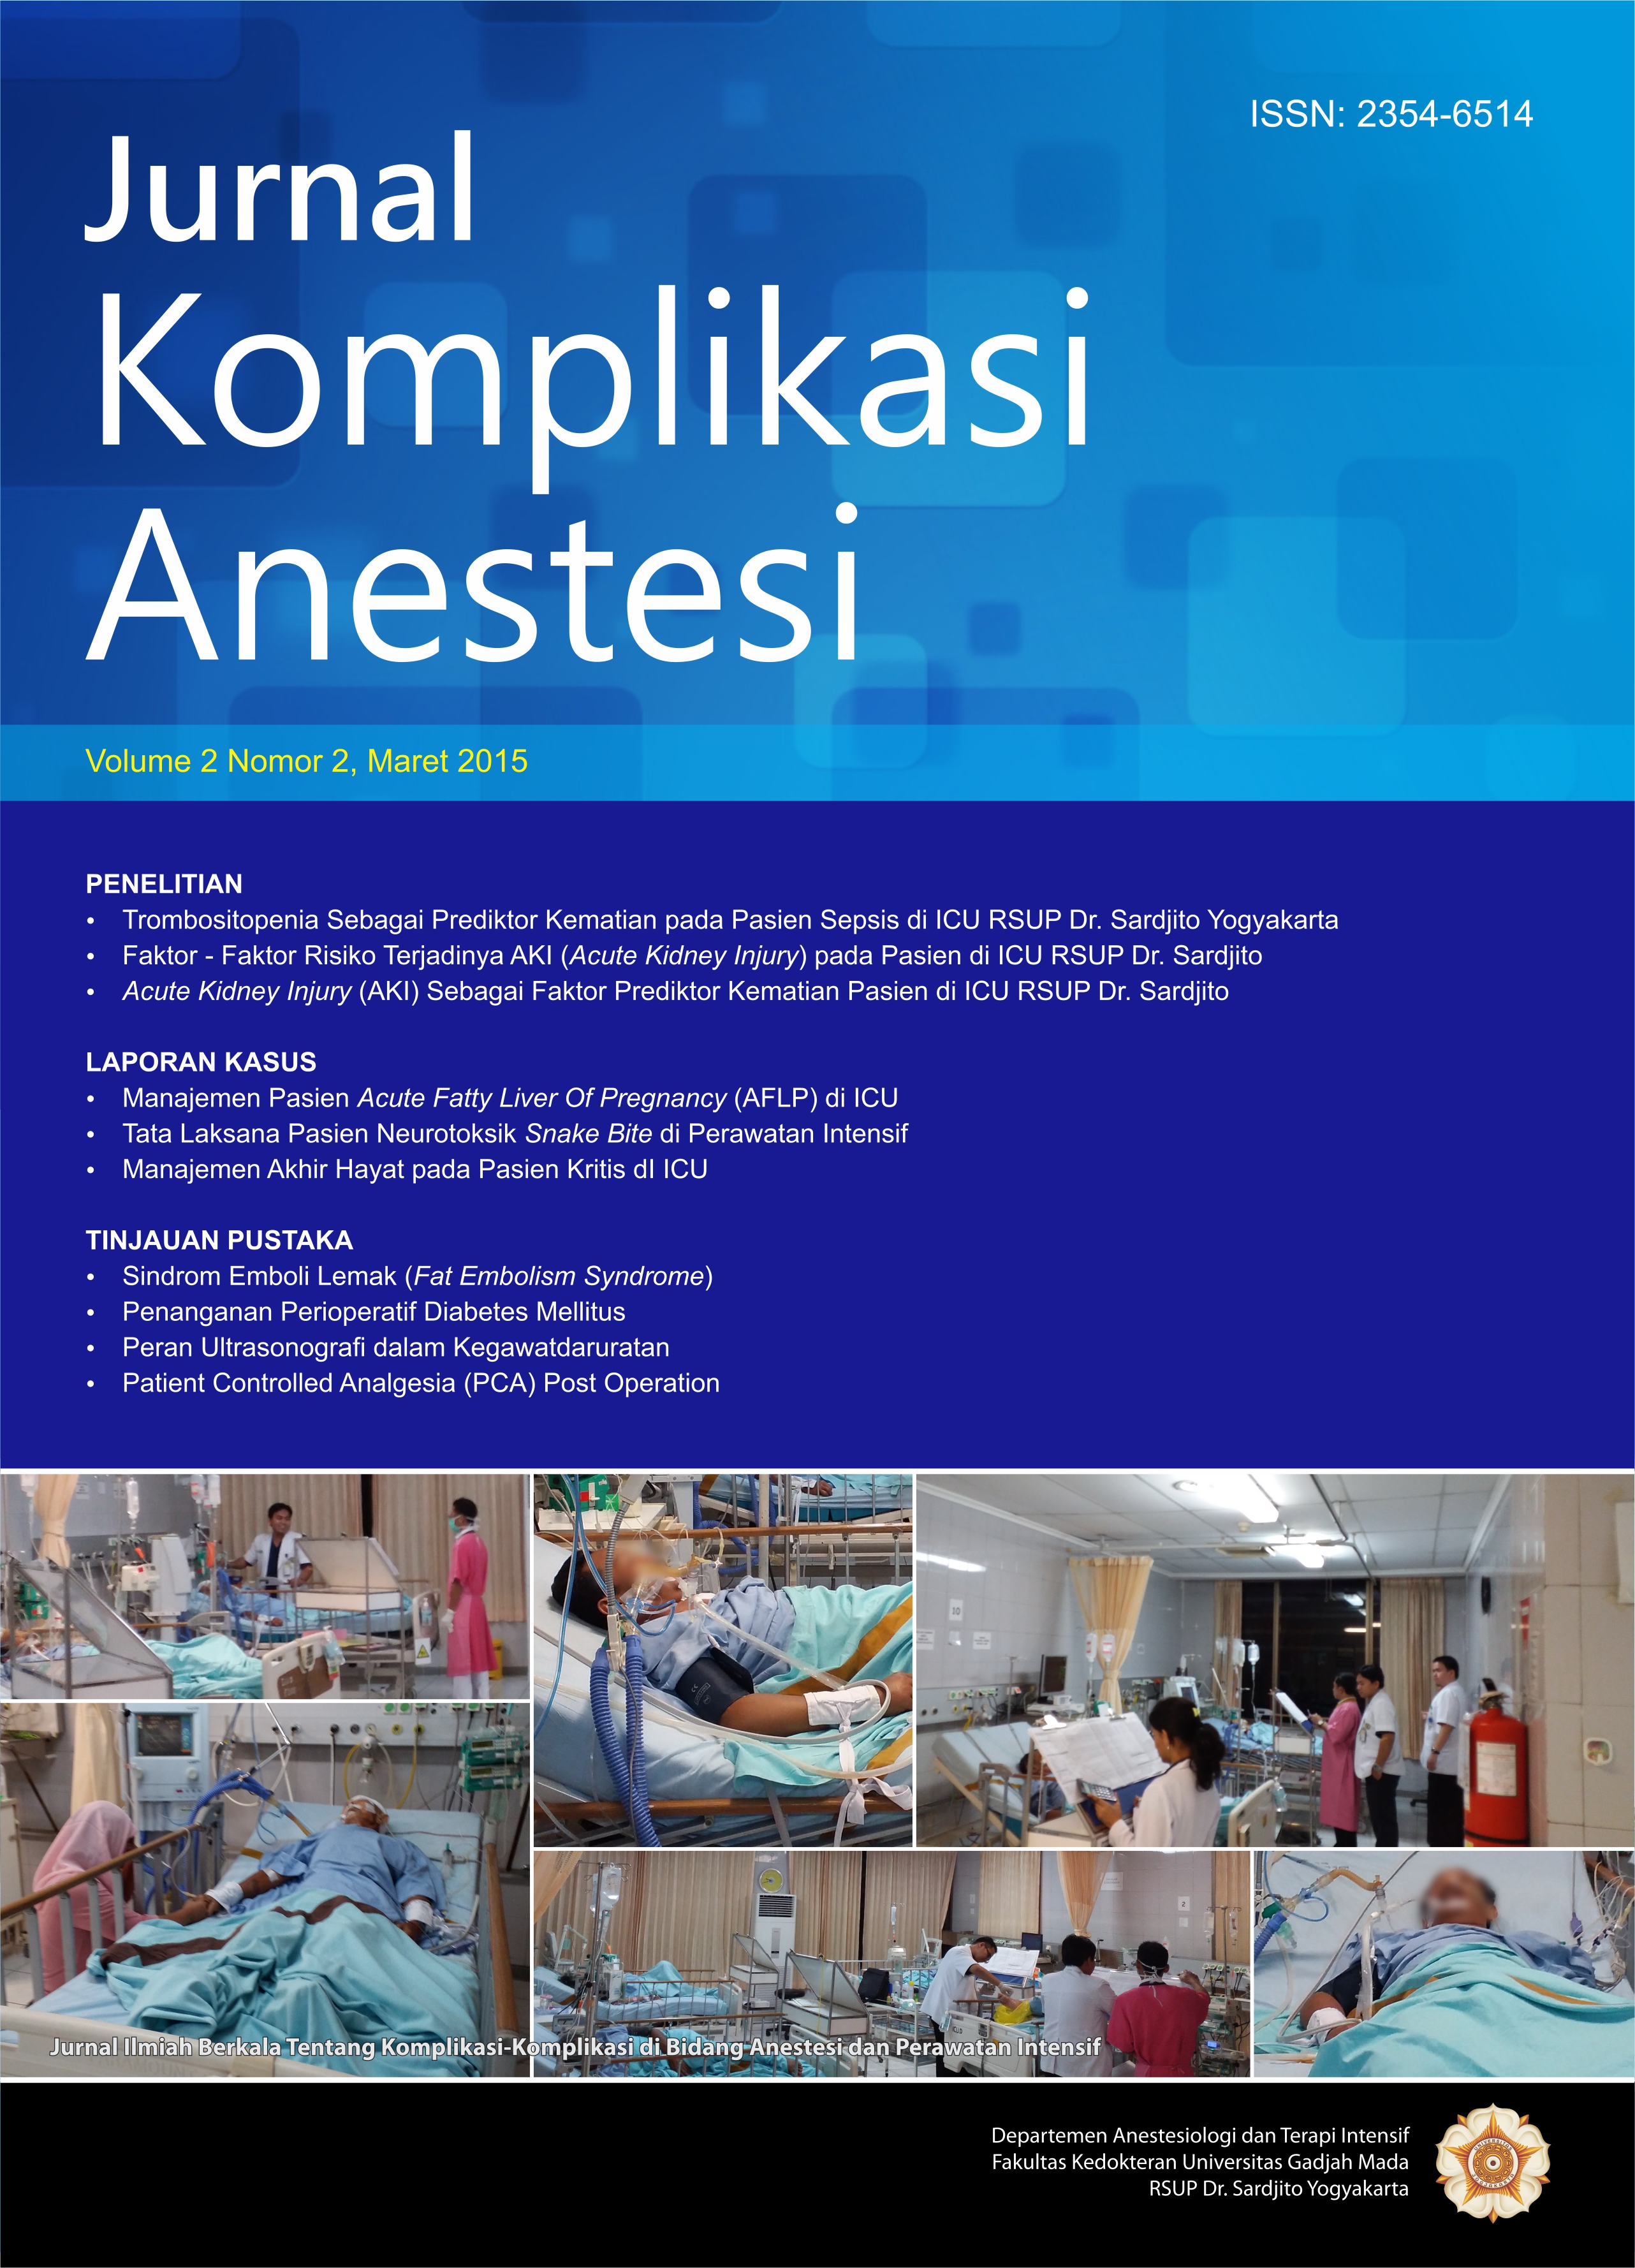 Patient Controlled Analgesia Pca Post Operation